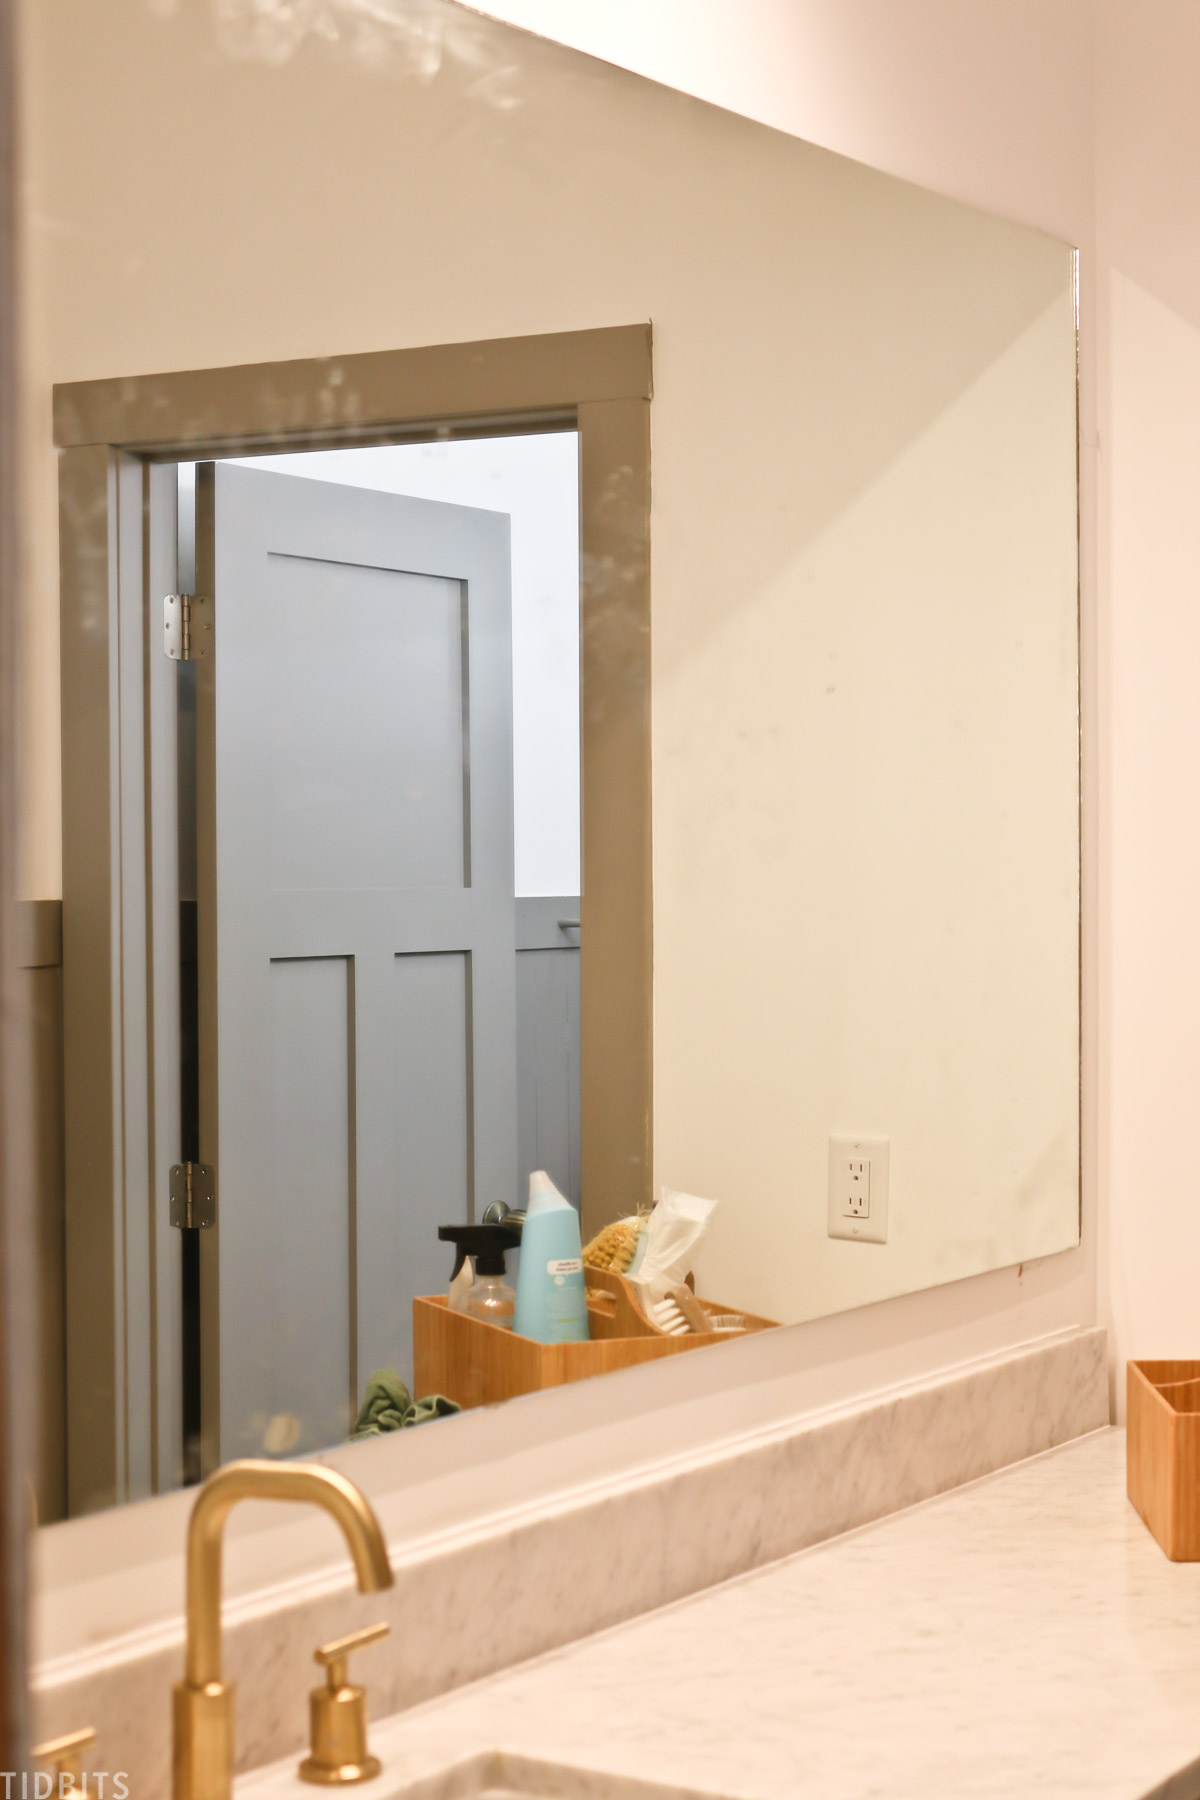 large mirror attached to wall above bathroom vanity with construction adhesive